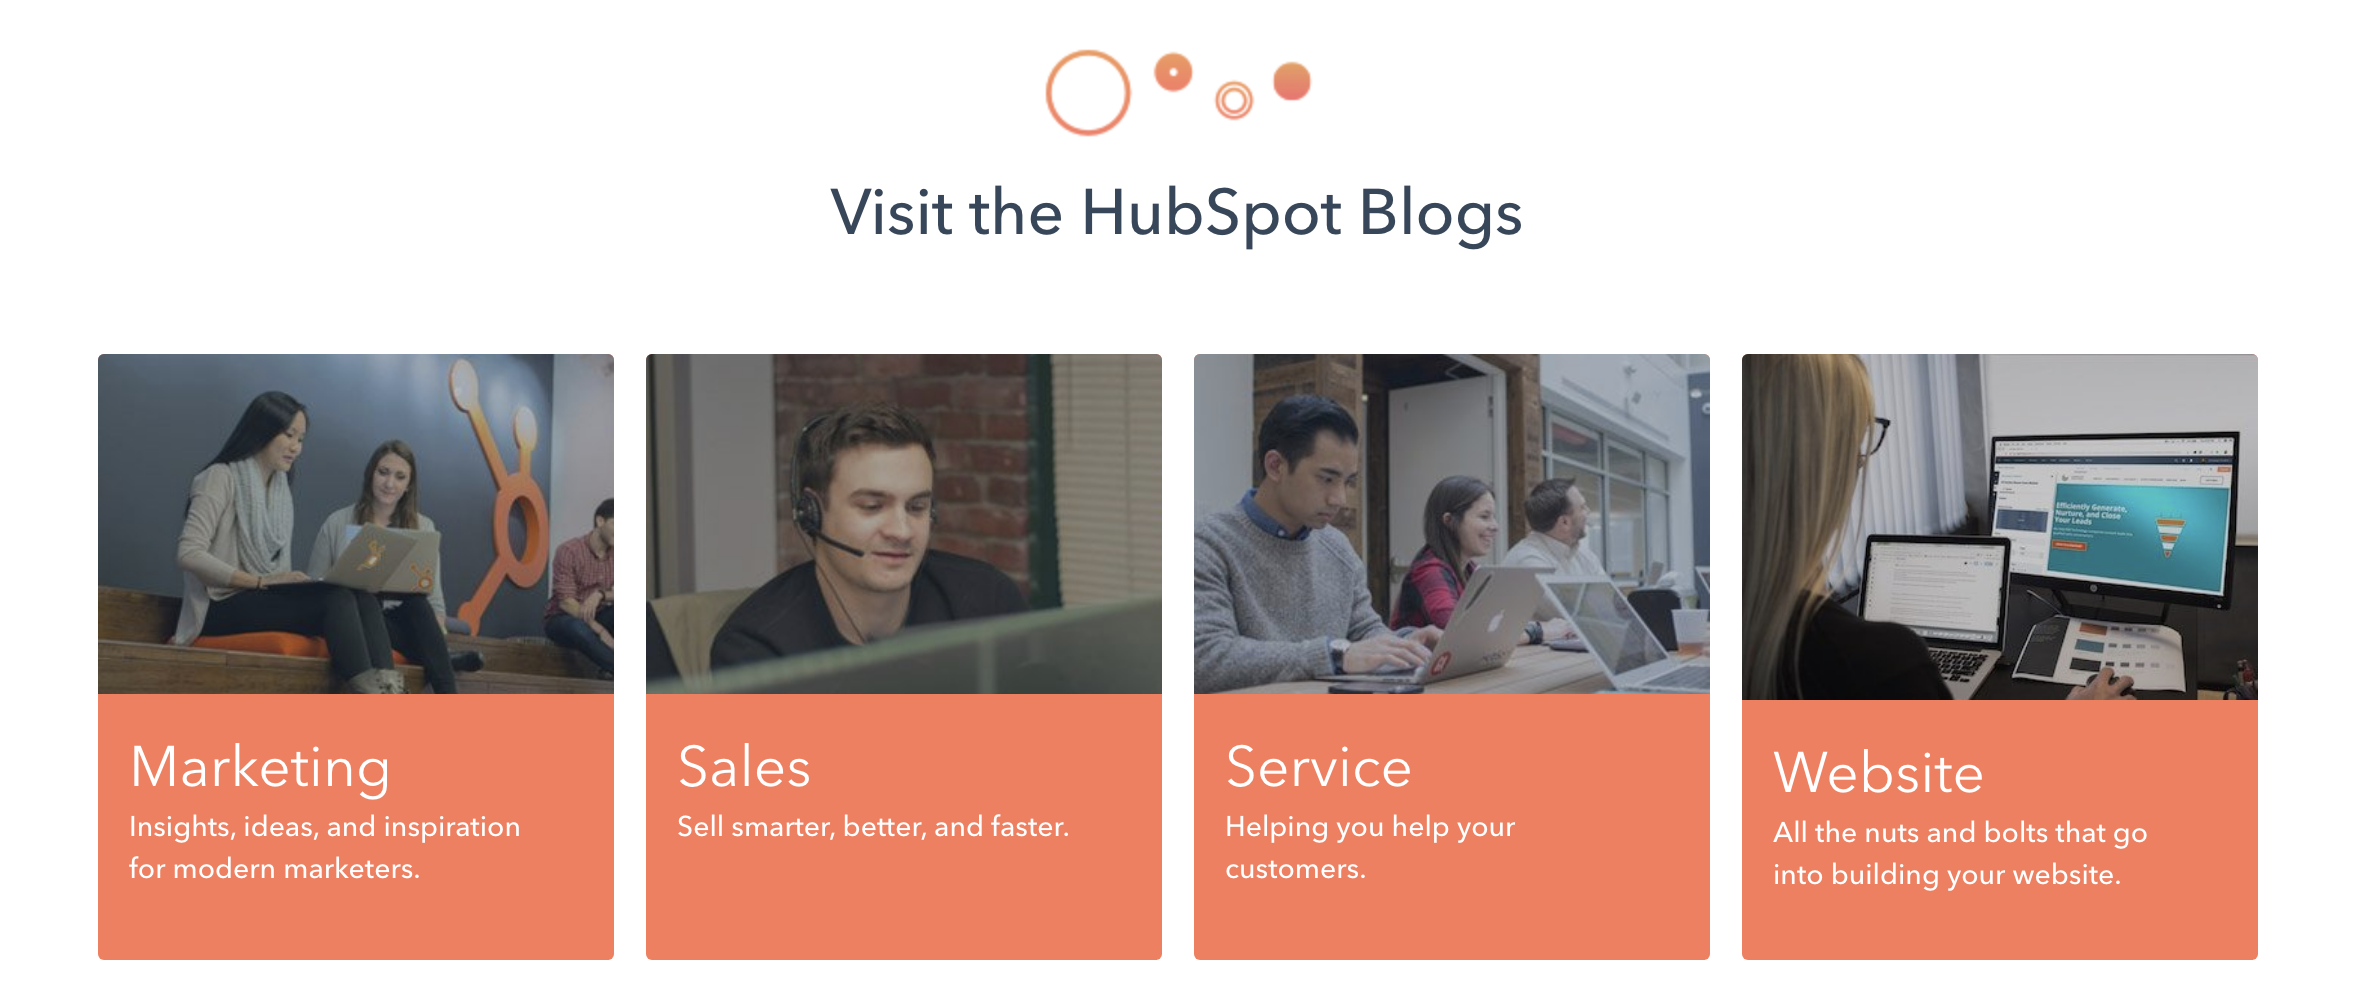 Example of how other websites (e.g. Hubspot) choose to categories their blog articles